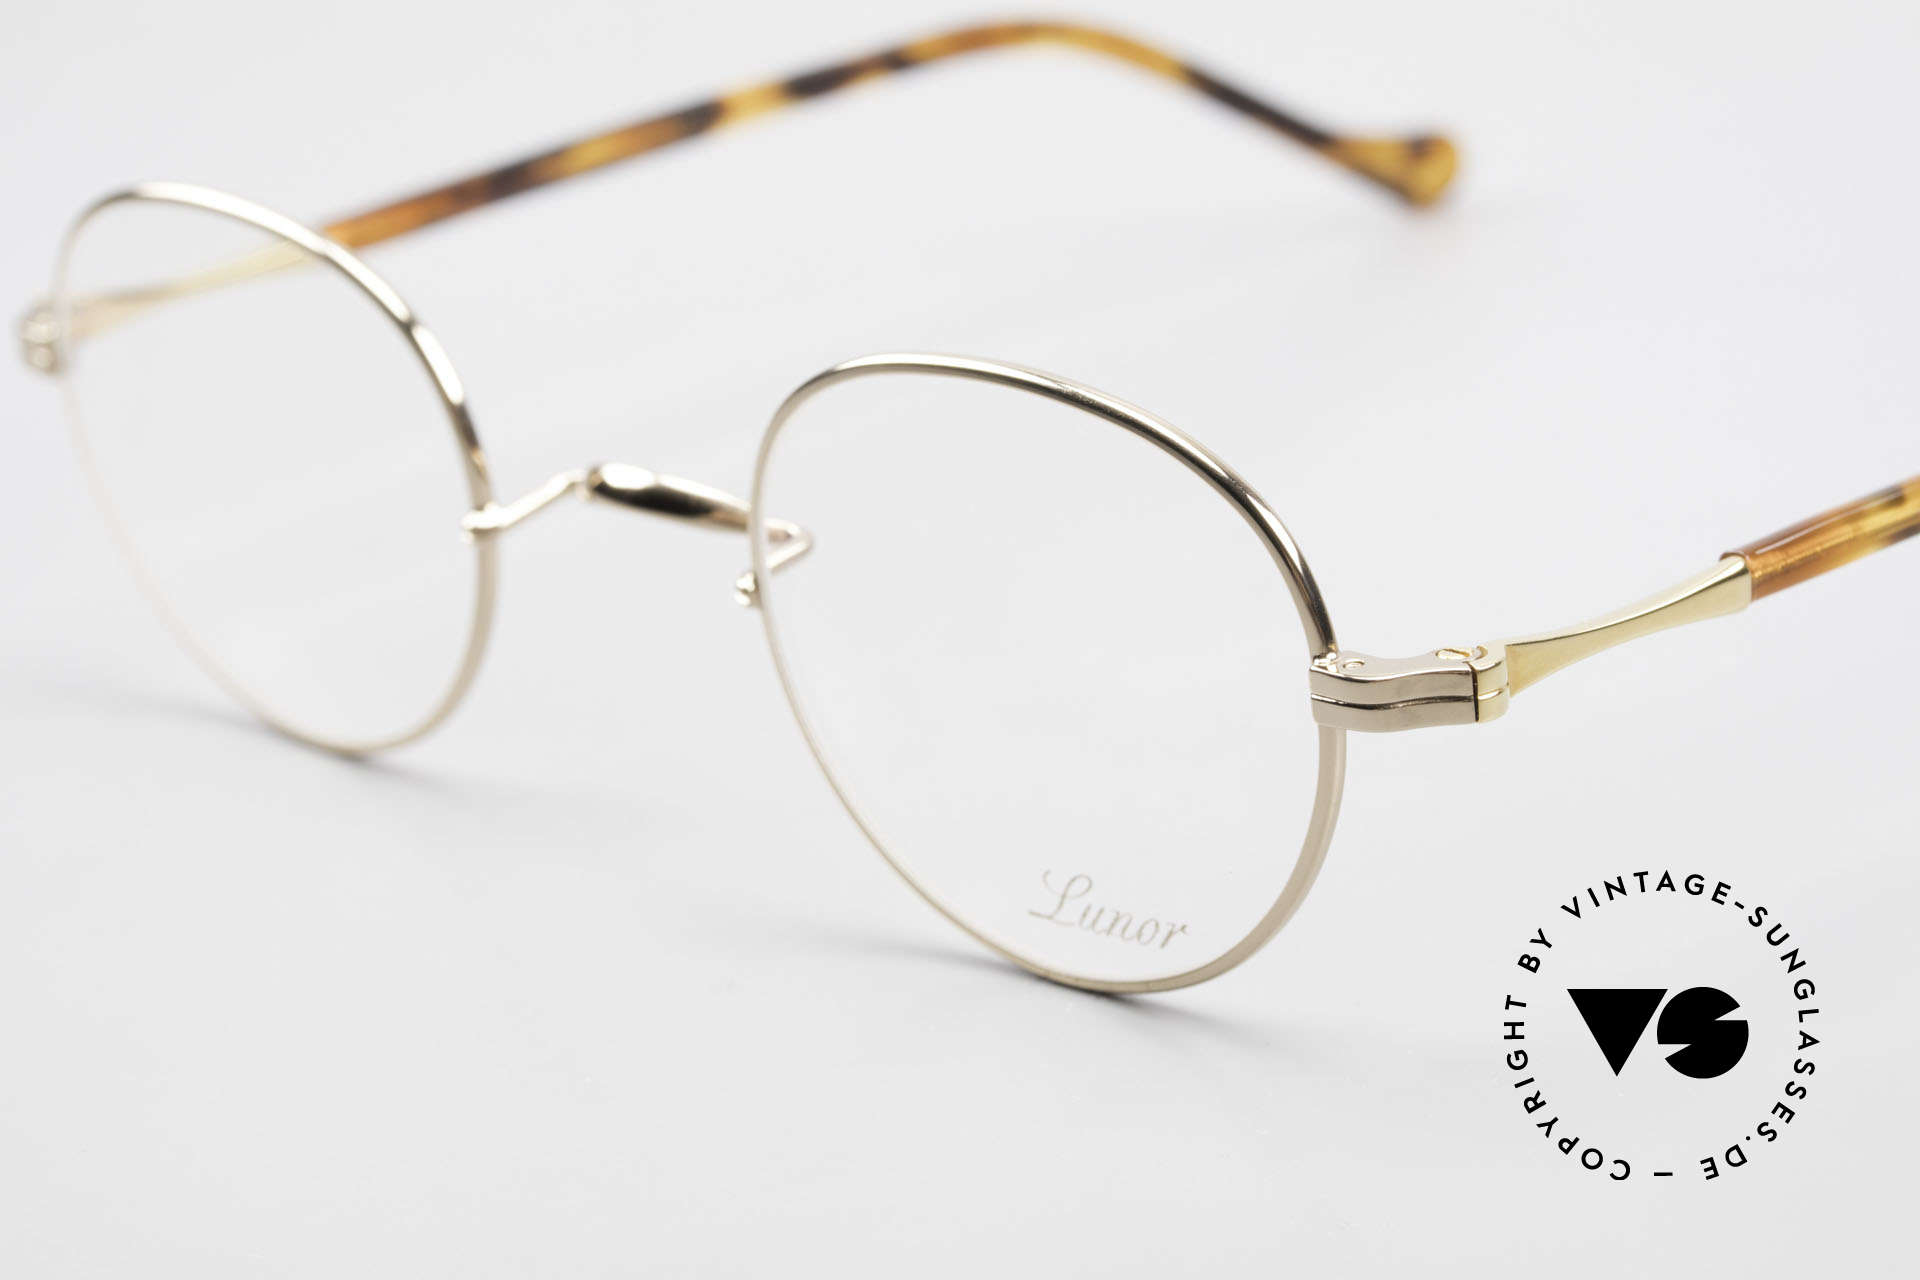 Lunor II A 22 Round Lunor Specs Gold Plated, traditional German brand; quality handmade in Germany, Made for Men and Women